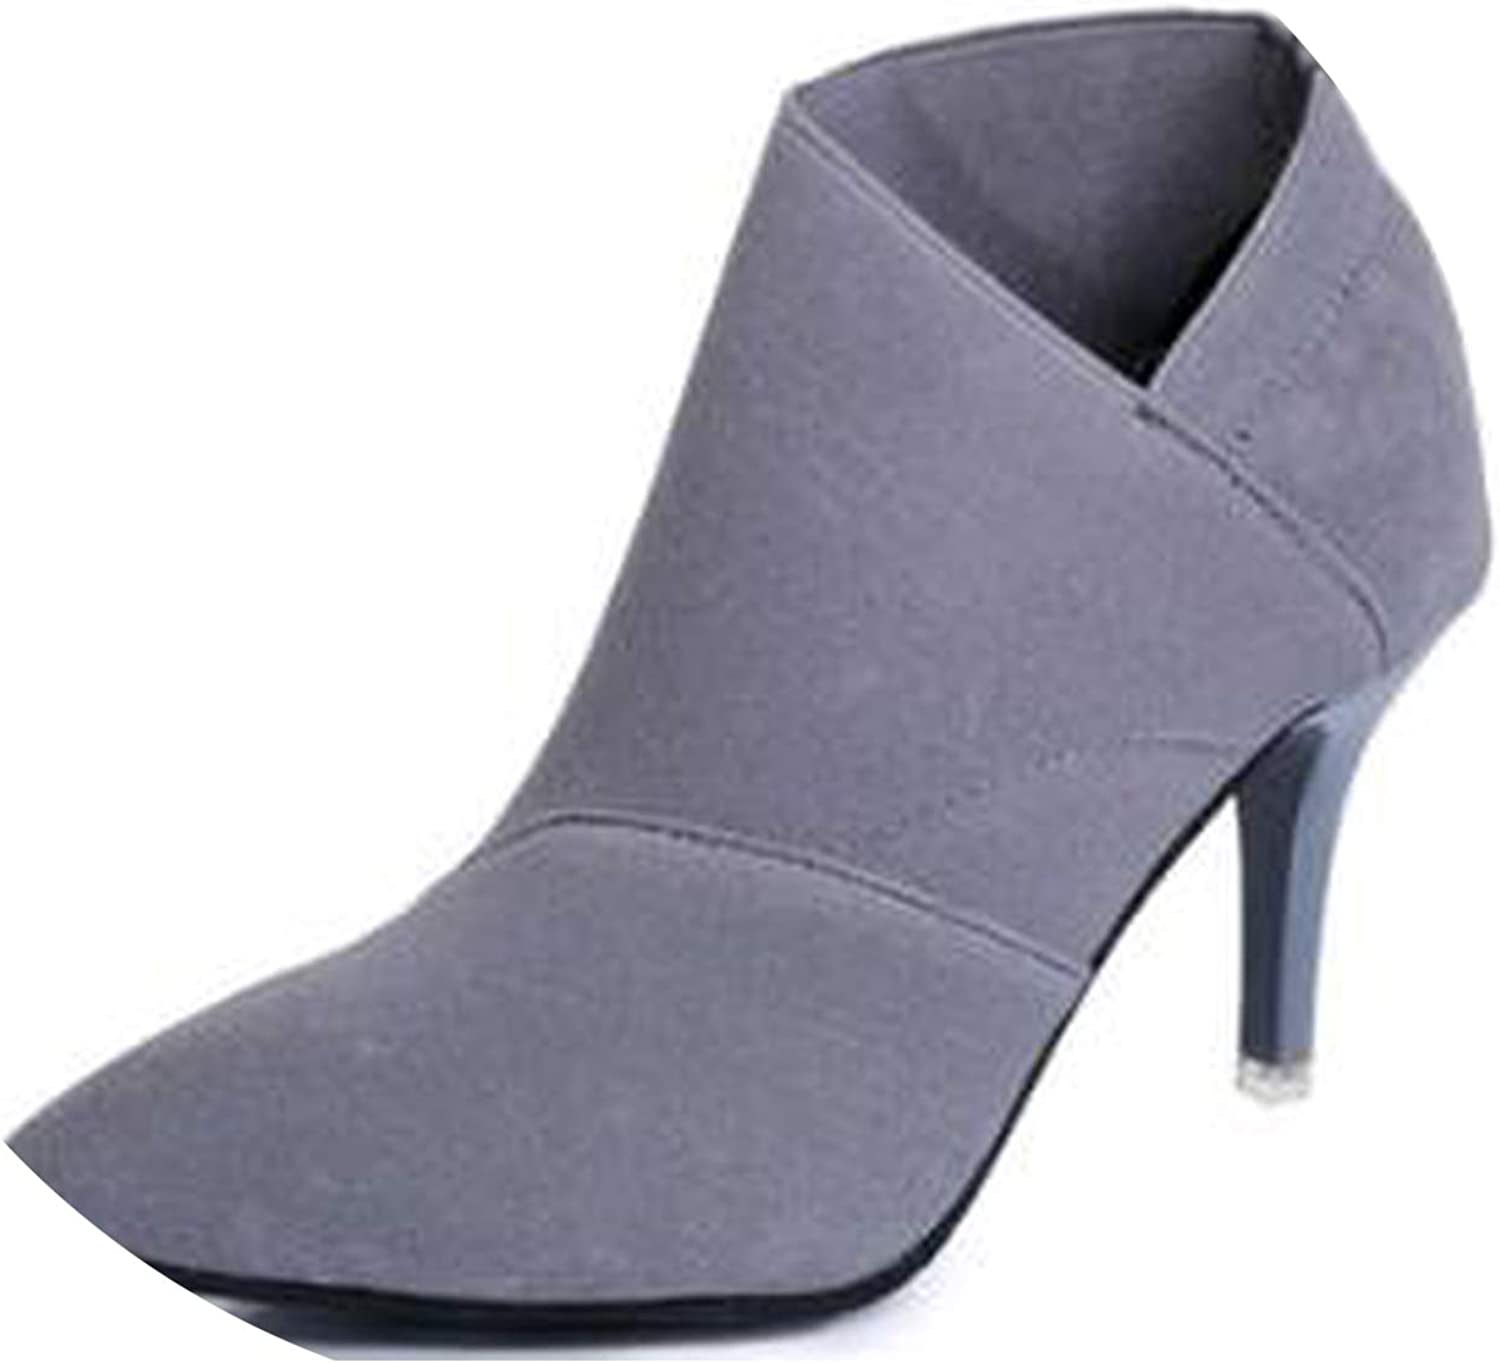 Lost Stars Pointed Toe High Heels Women shoes Basic shoes Autumn and Winter Casual Fitted Single Outwear shoes